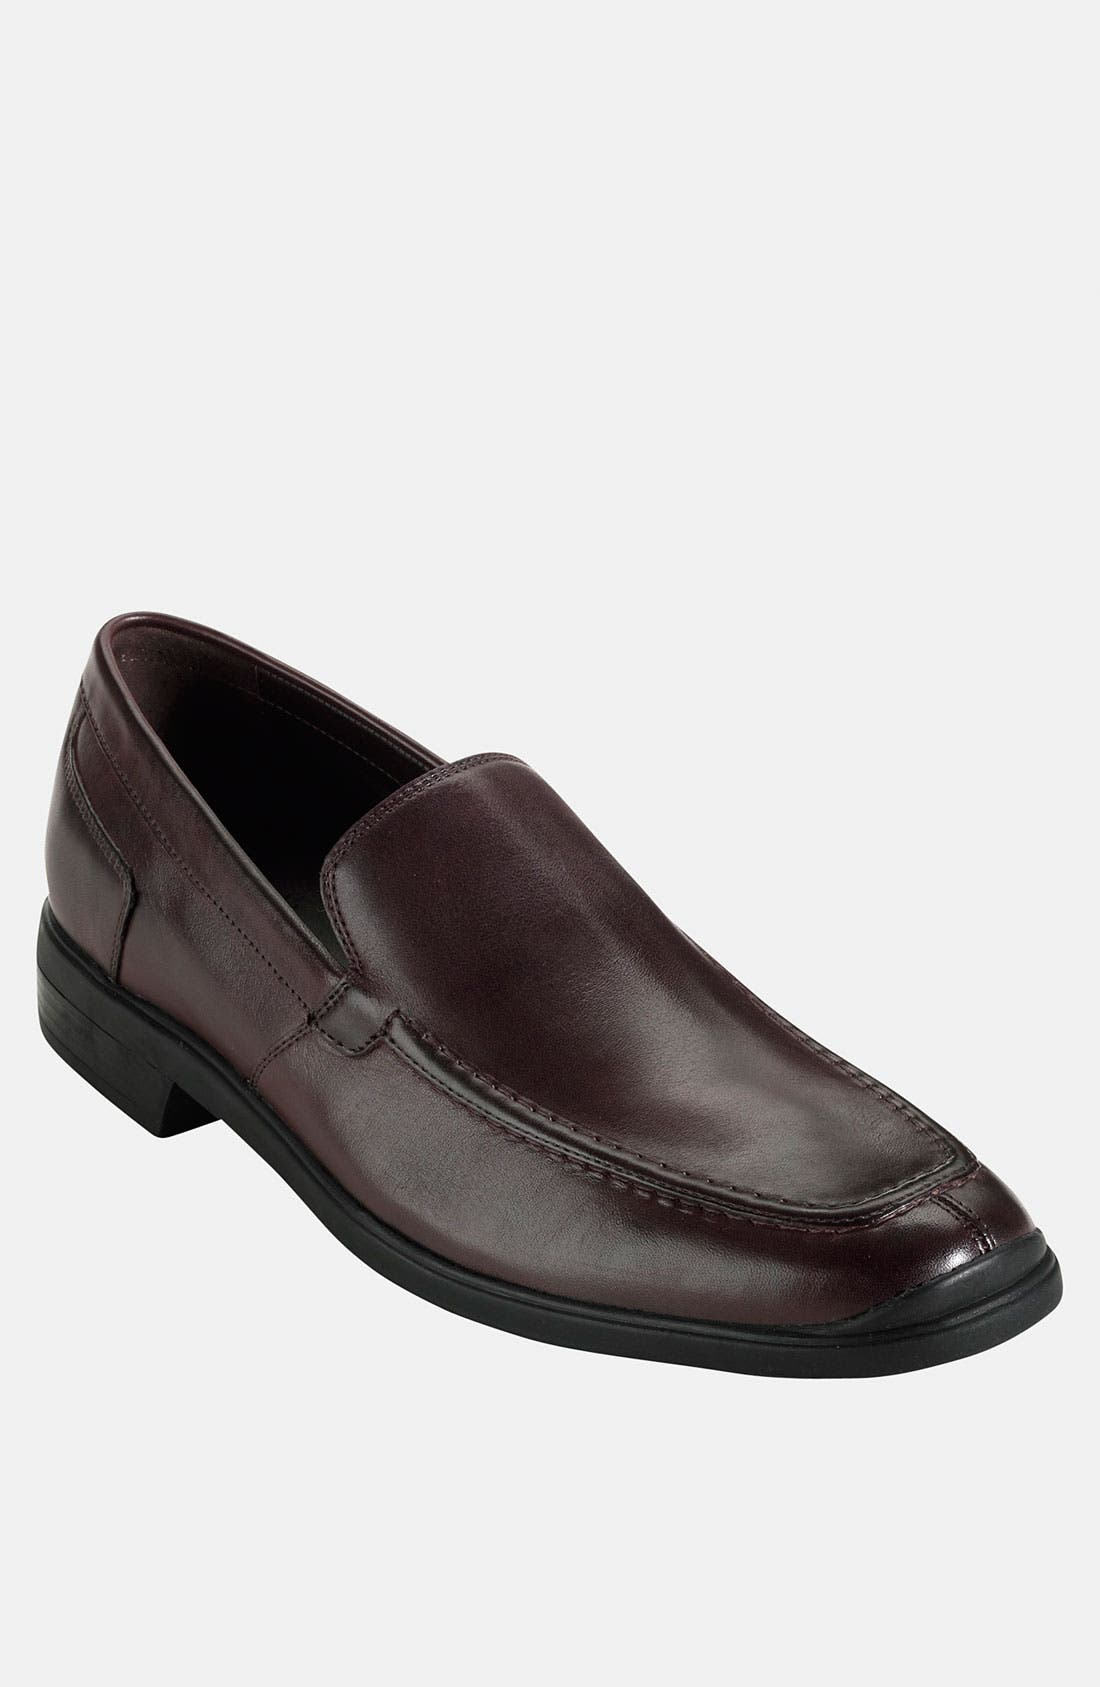 Alternate Image 1 Selected - Cole Haan 'Air Stylar' Split Toe Loafer   (Men)